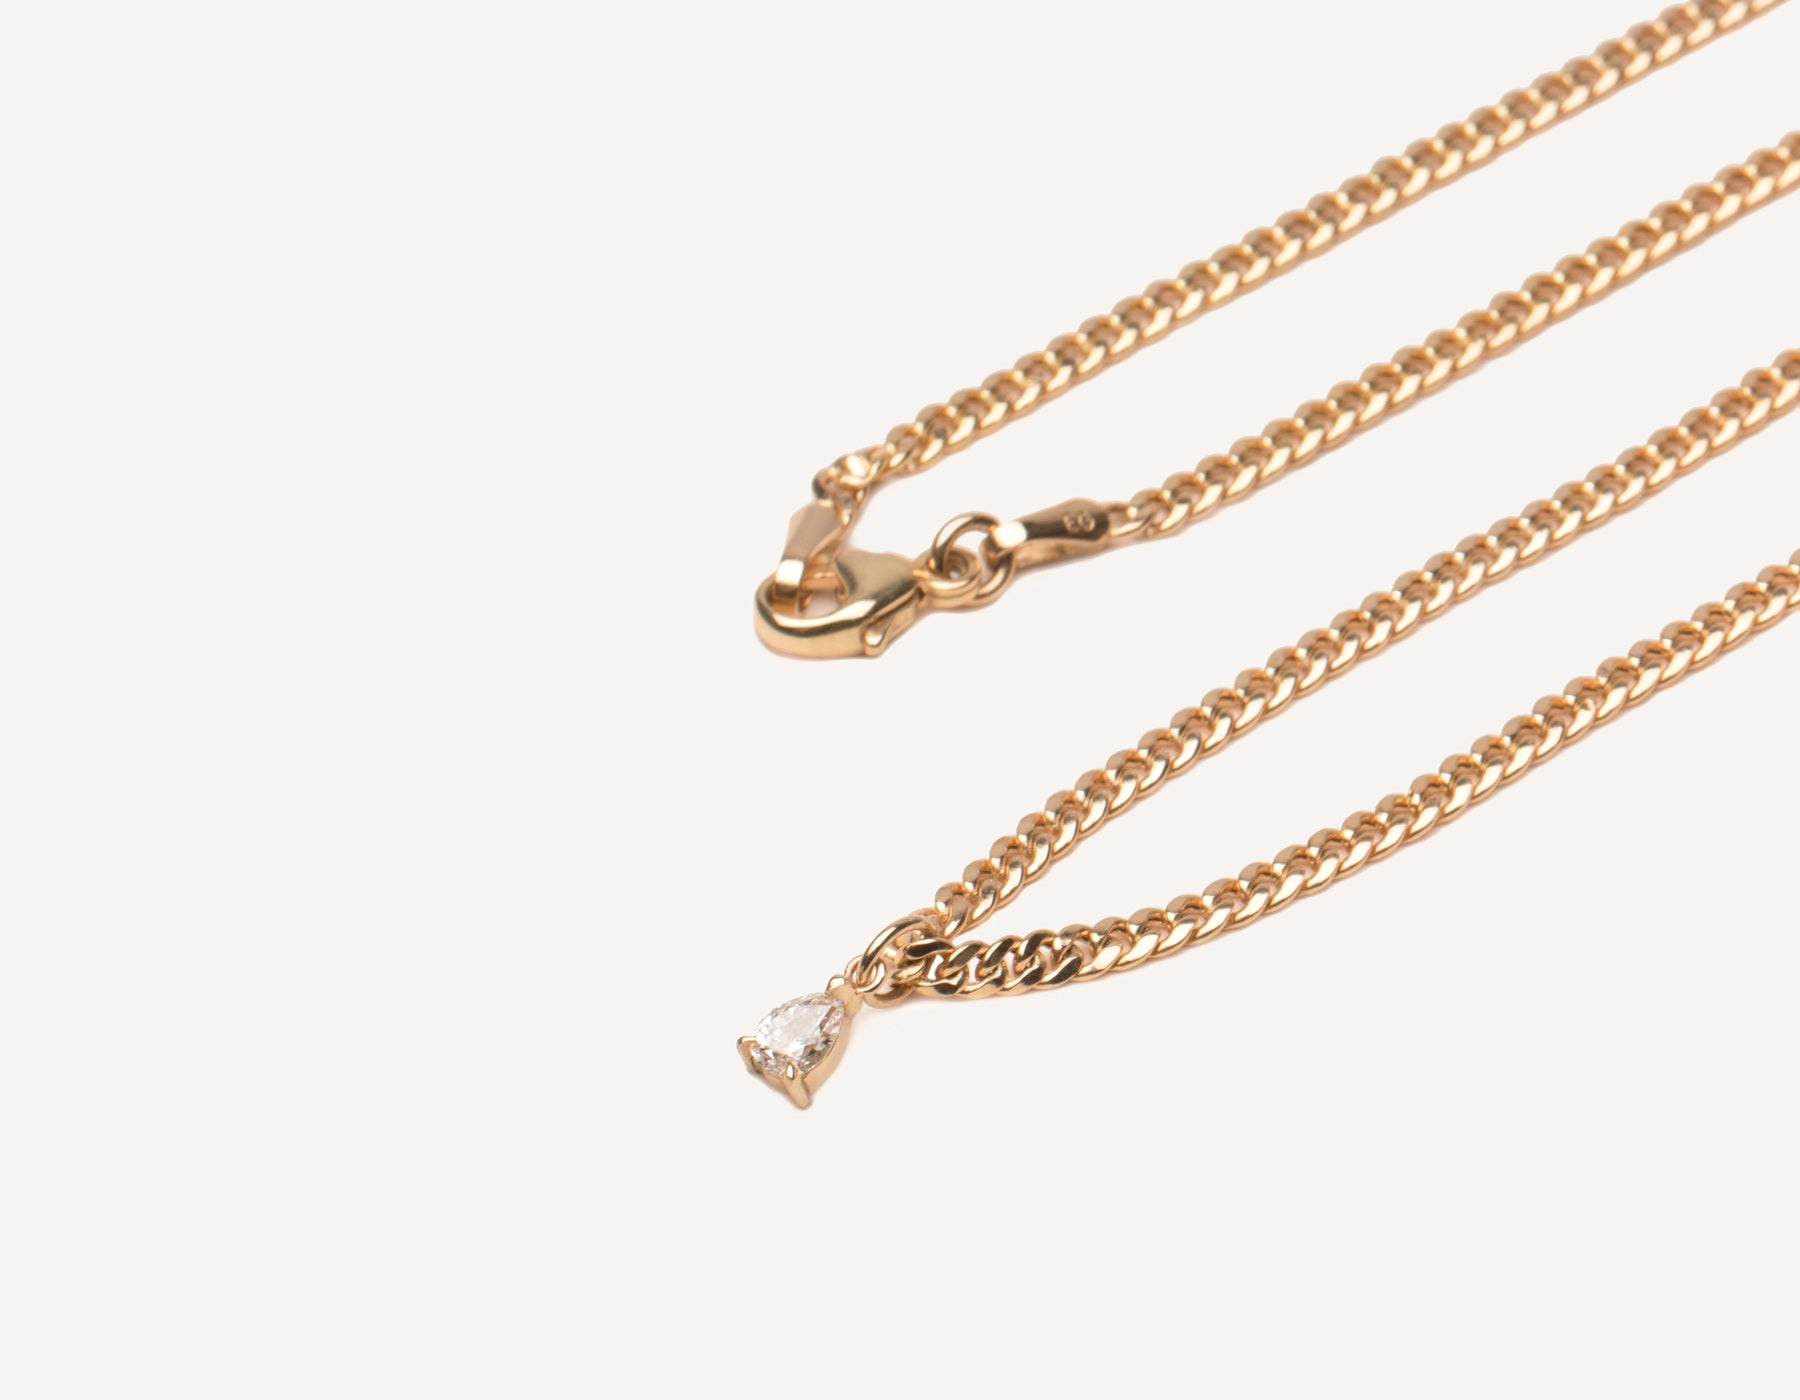 Simple Classic 14K Solid Gold Pear Diamond Pendant on thick Cuban Link chain with lobster ring clasp vrai & oro, 14K Rose Gold